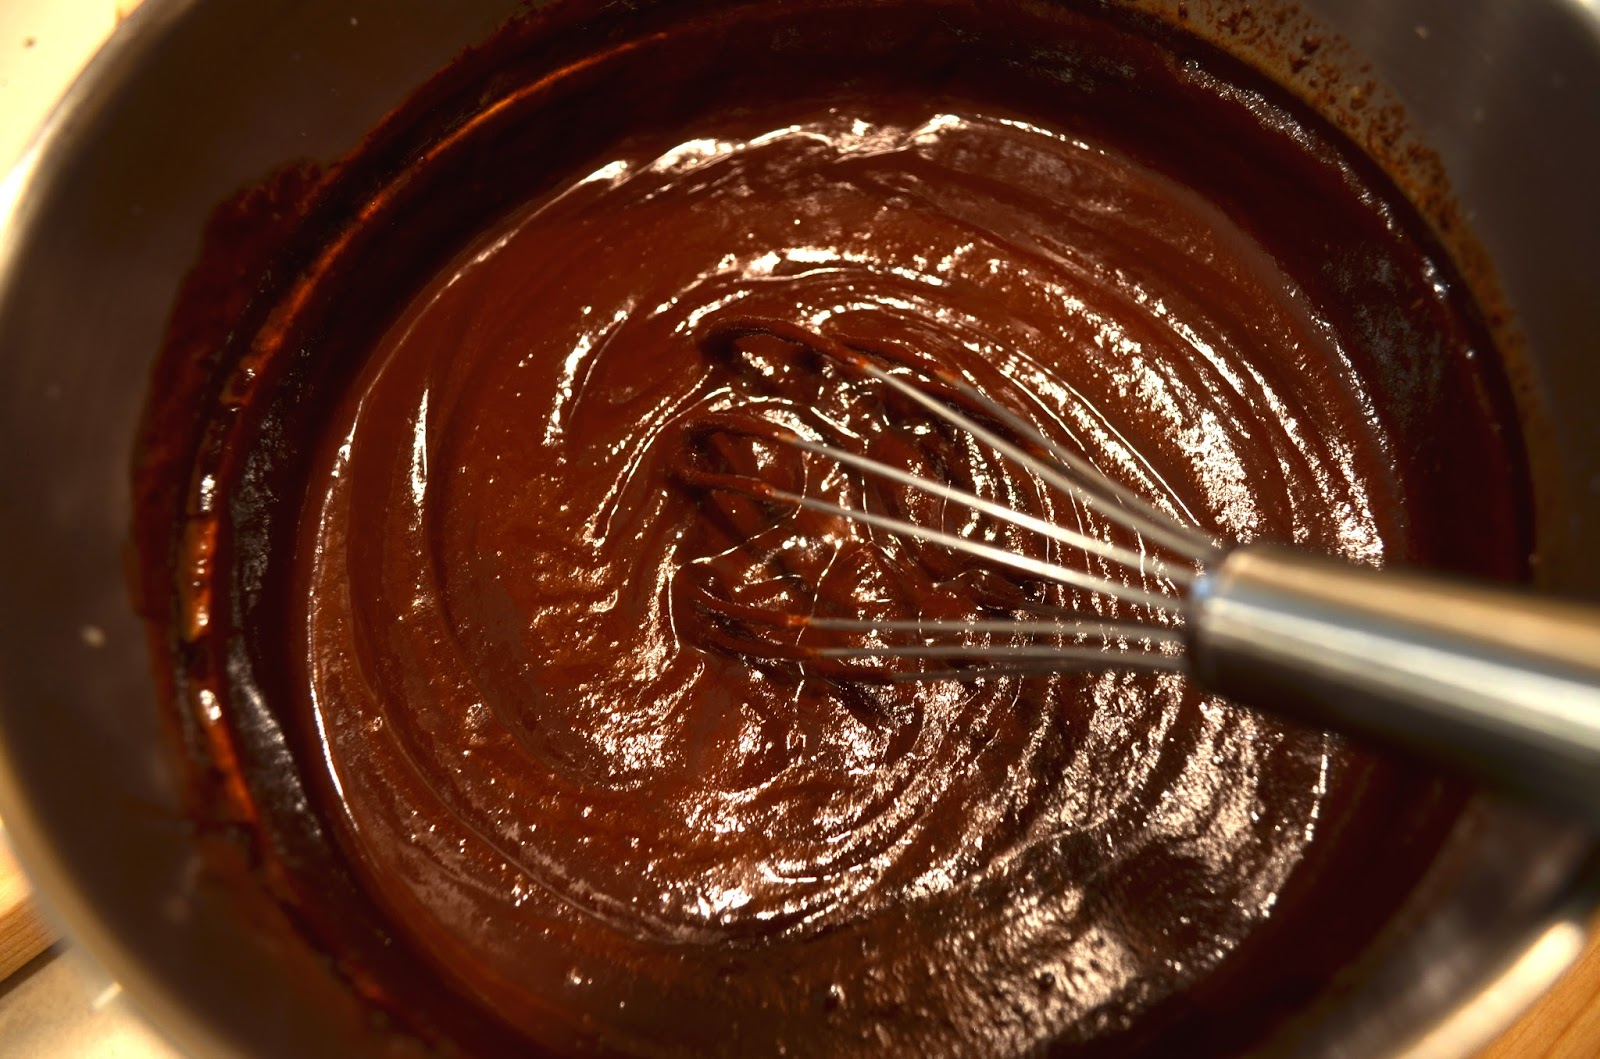 Melted chocolate truffle mixture